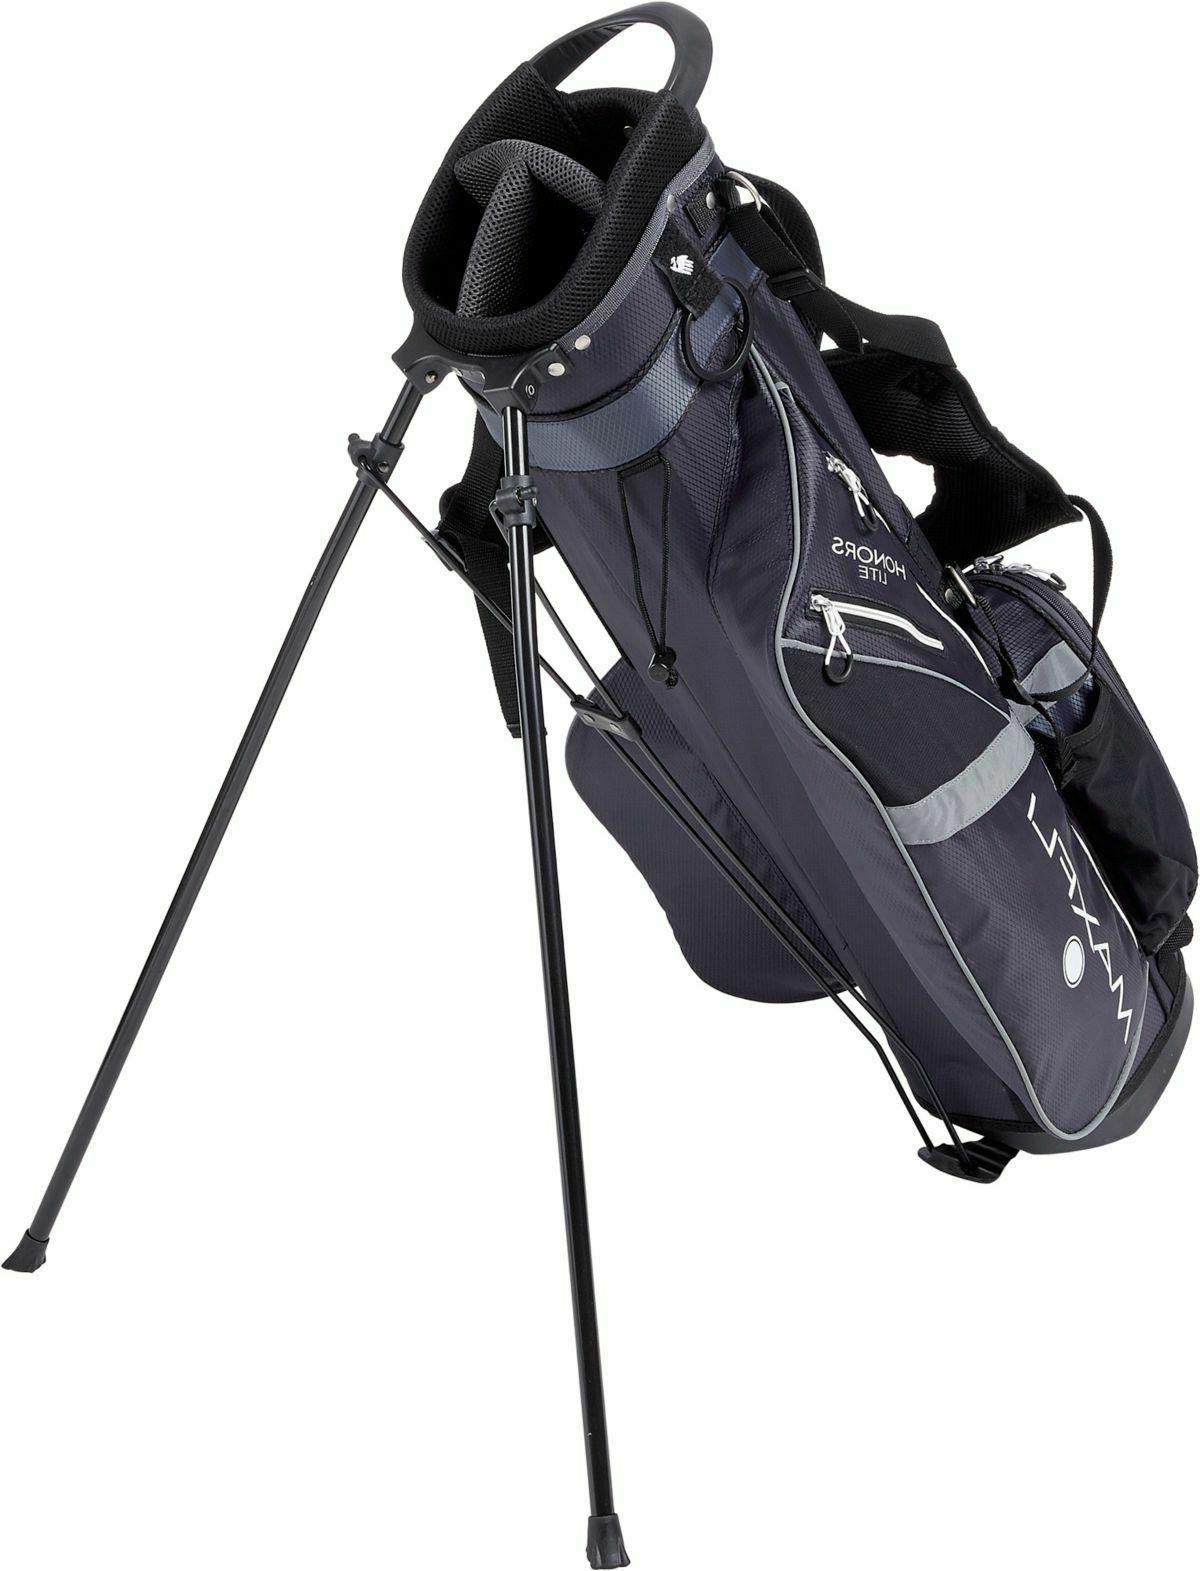 New Honors Sunday Golf Bag 3-Way Black